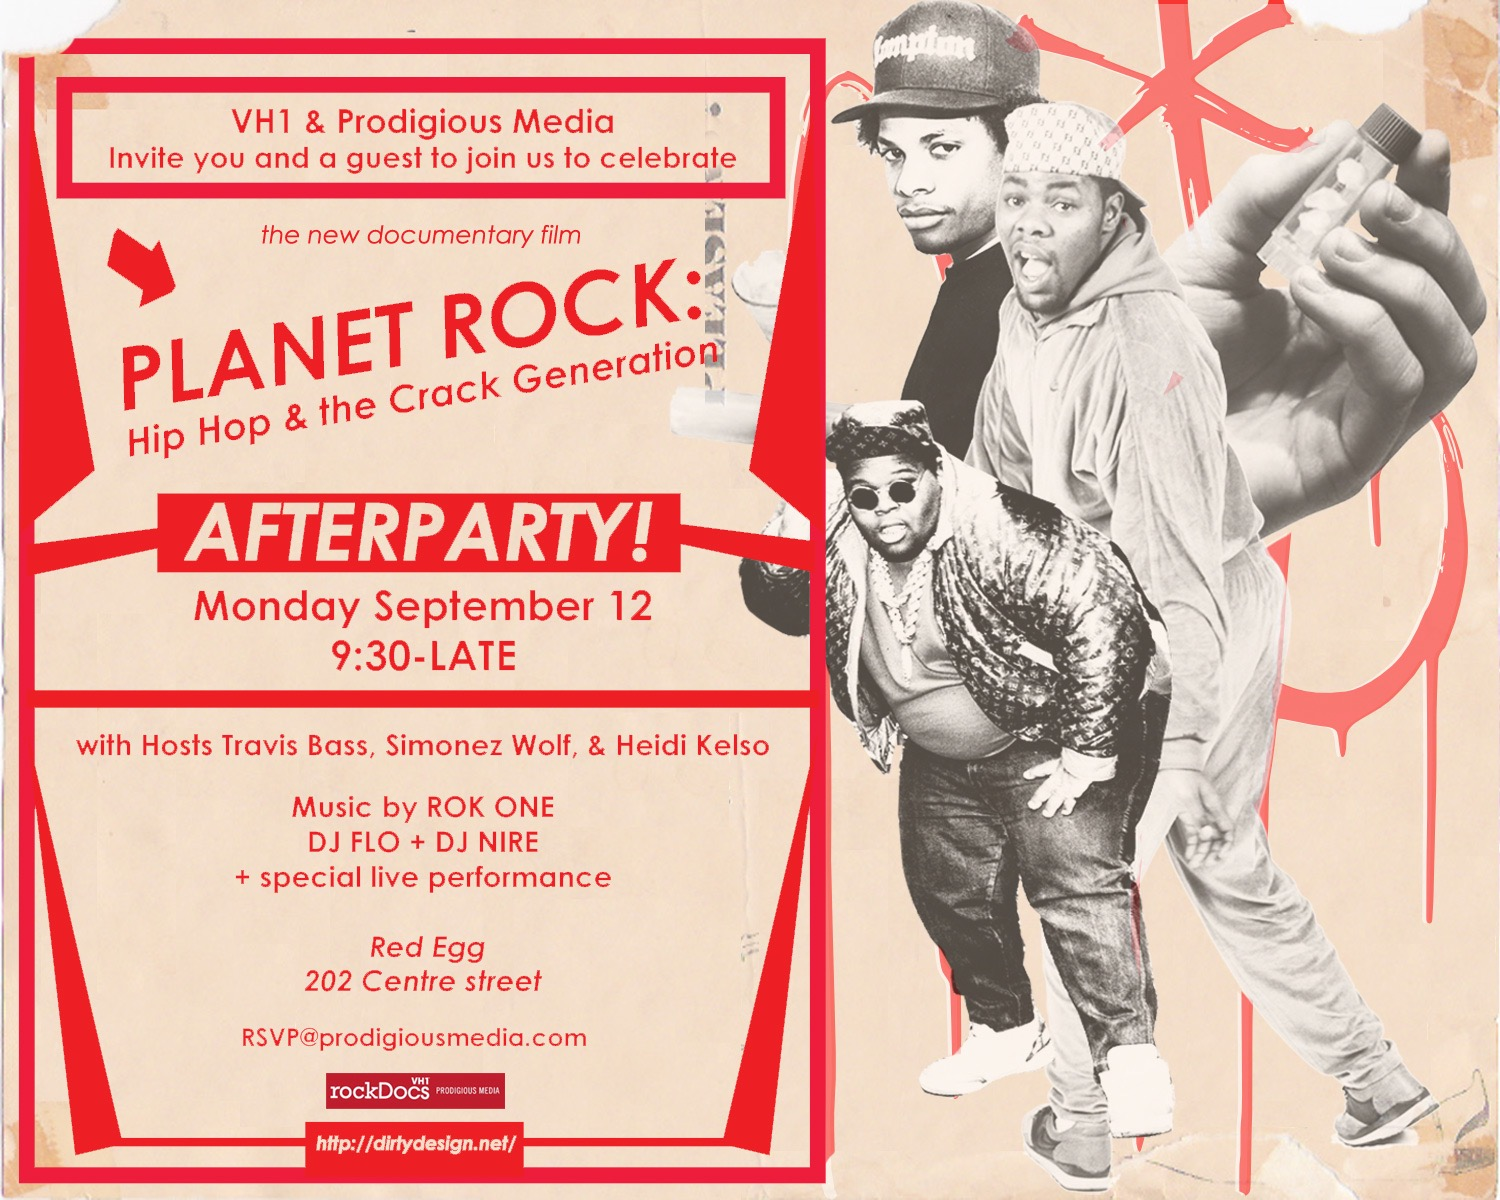 planetrock_afterpartyV2.jpg